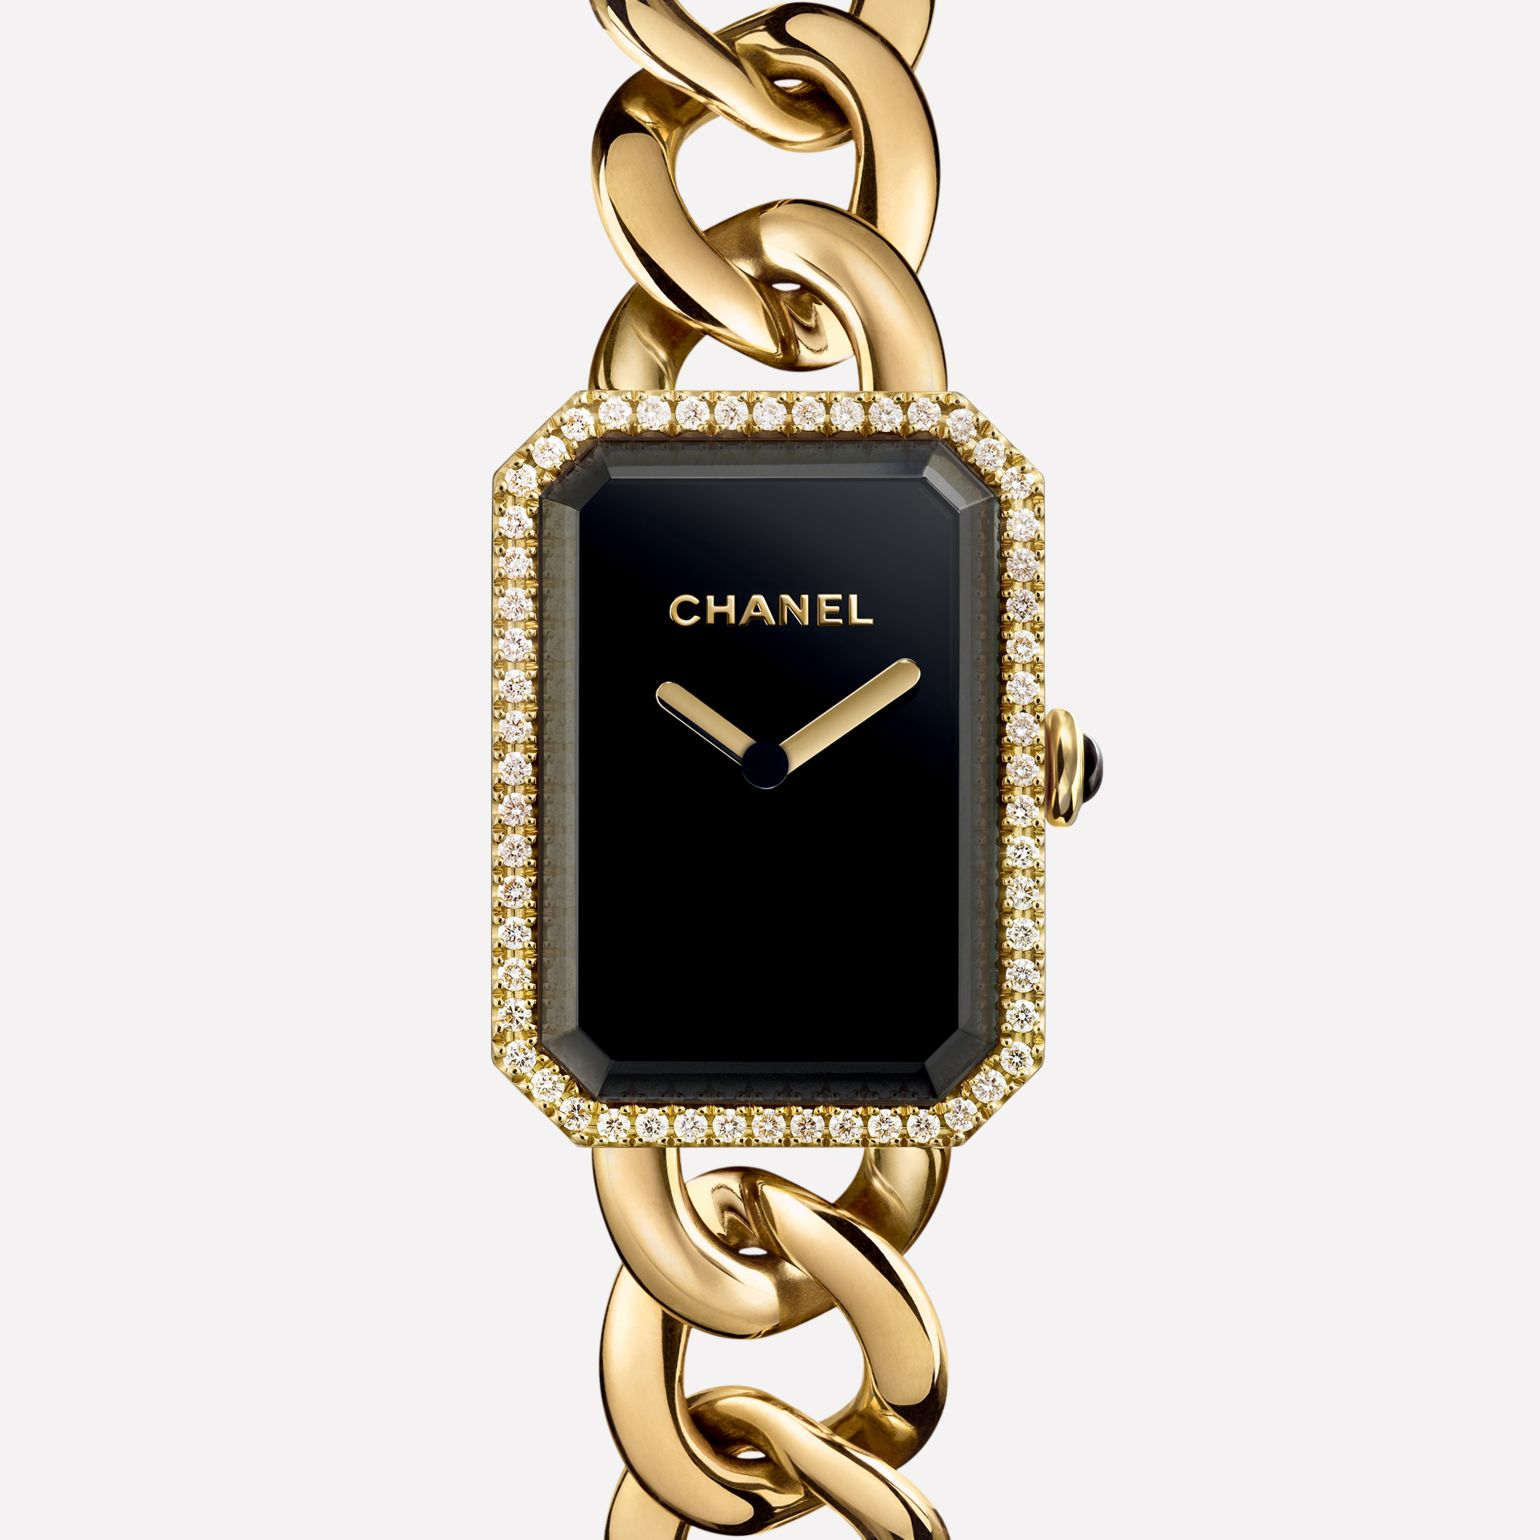 Première Chaîne Large version, yellow gold and diamonds, black dial